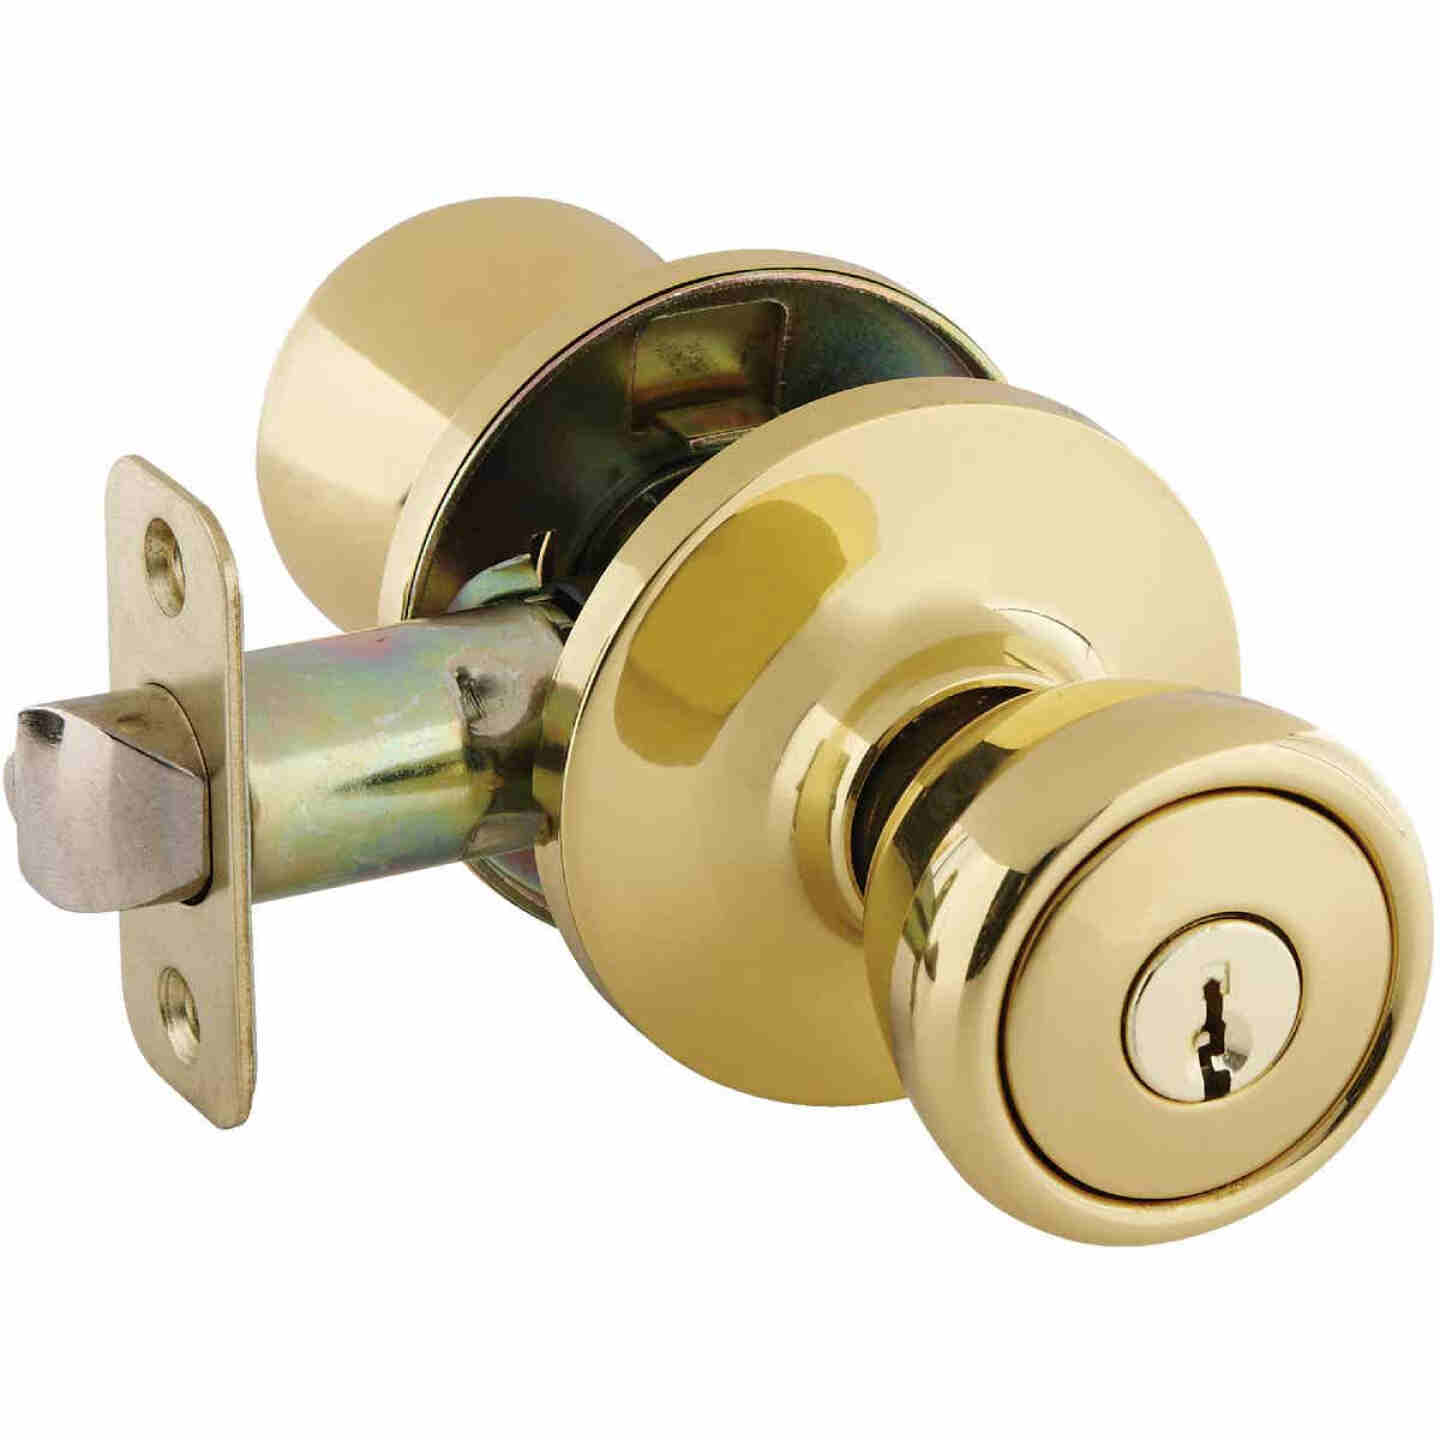 Ultra Hardware Ultra Security Series Polished Brass Entry Door Knob  Image 1